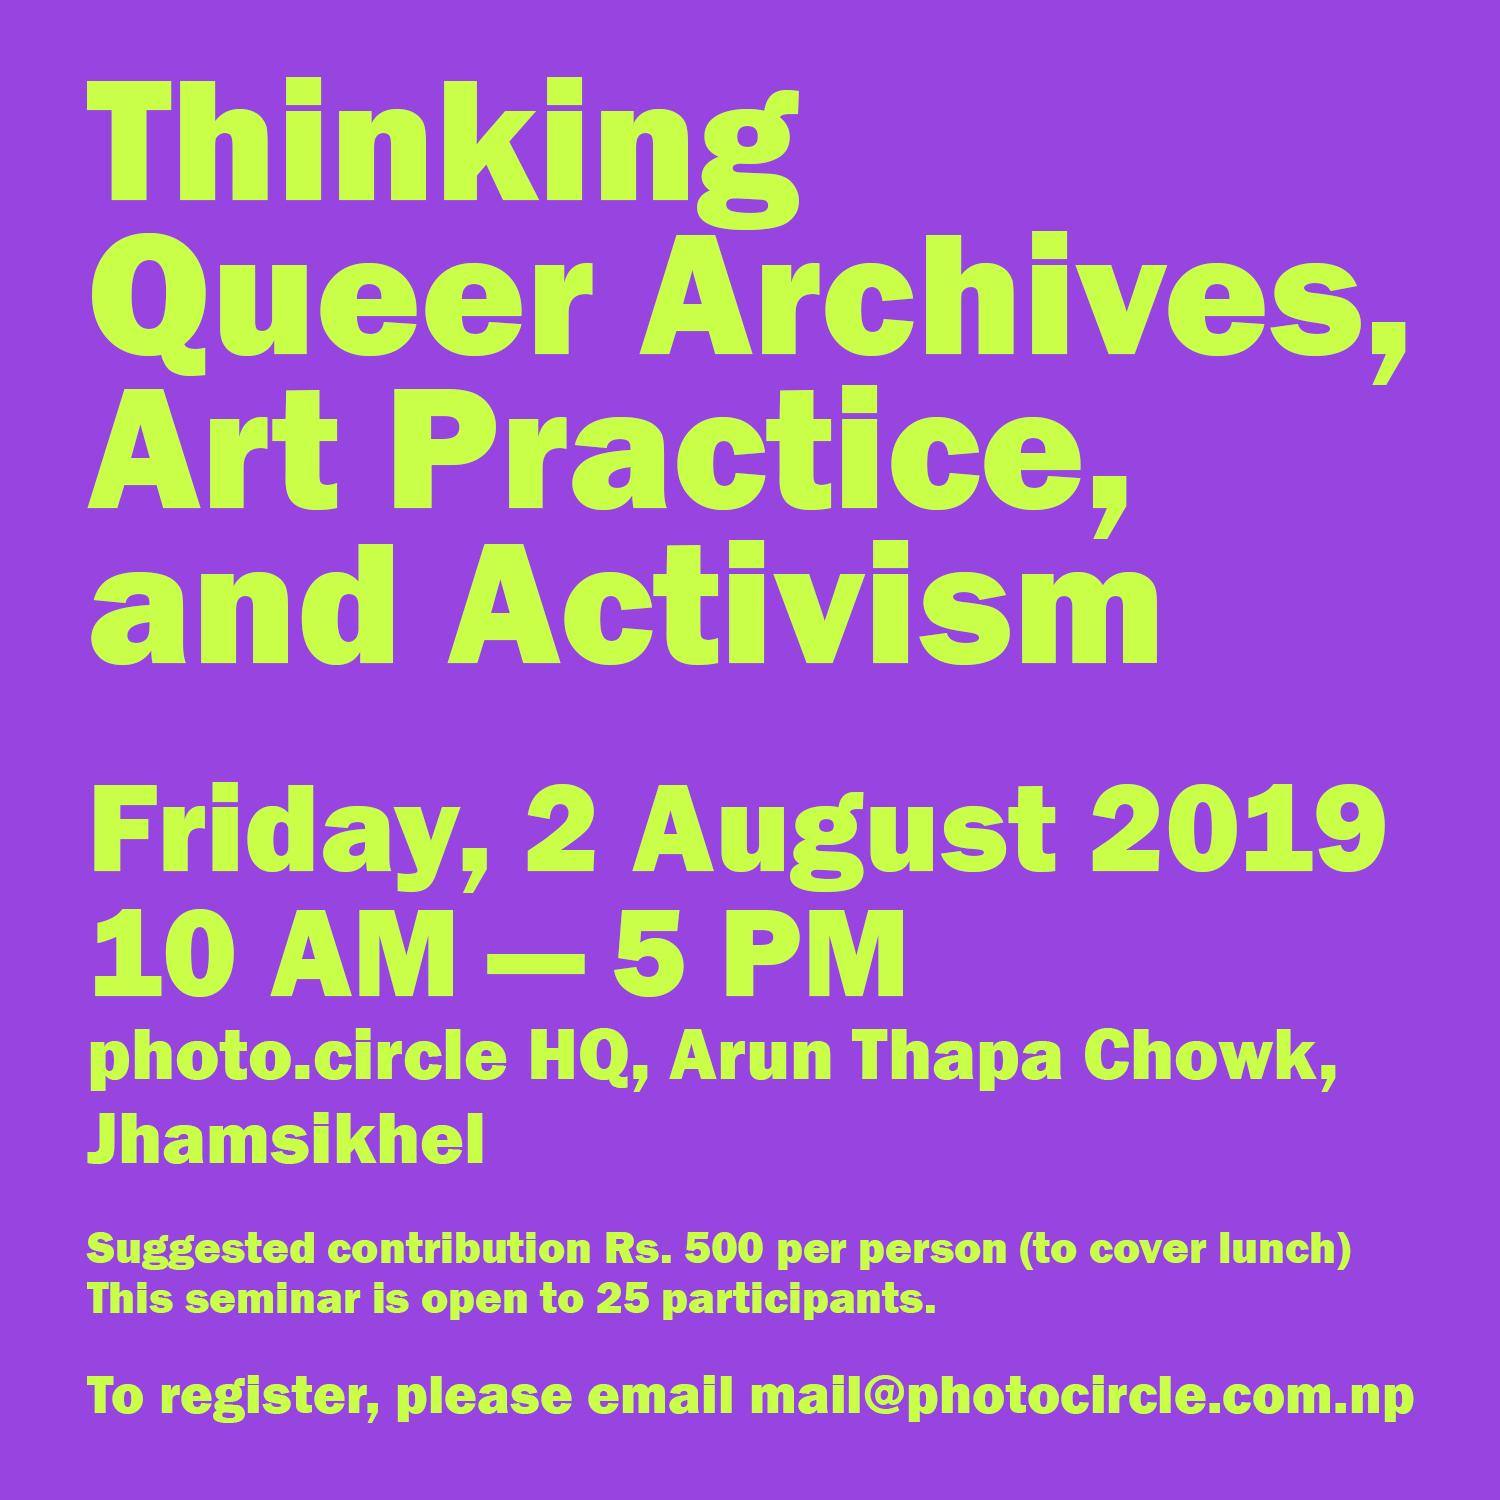 Thinking Queer Archives, Art Practice and Activism